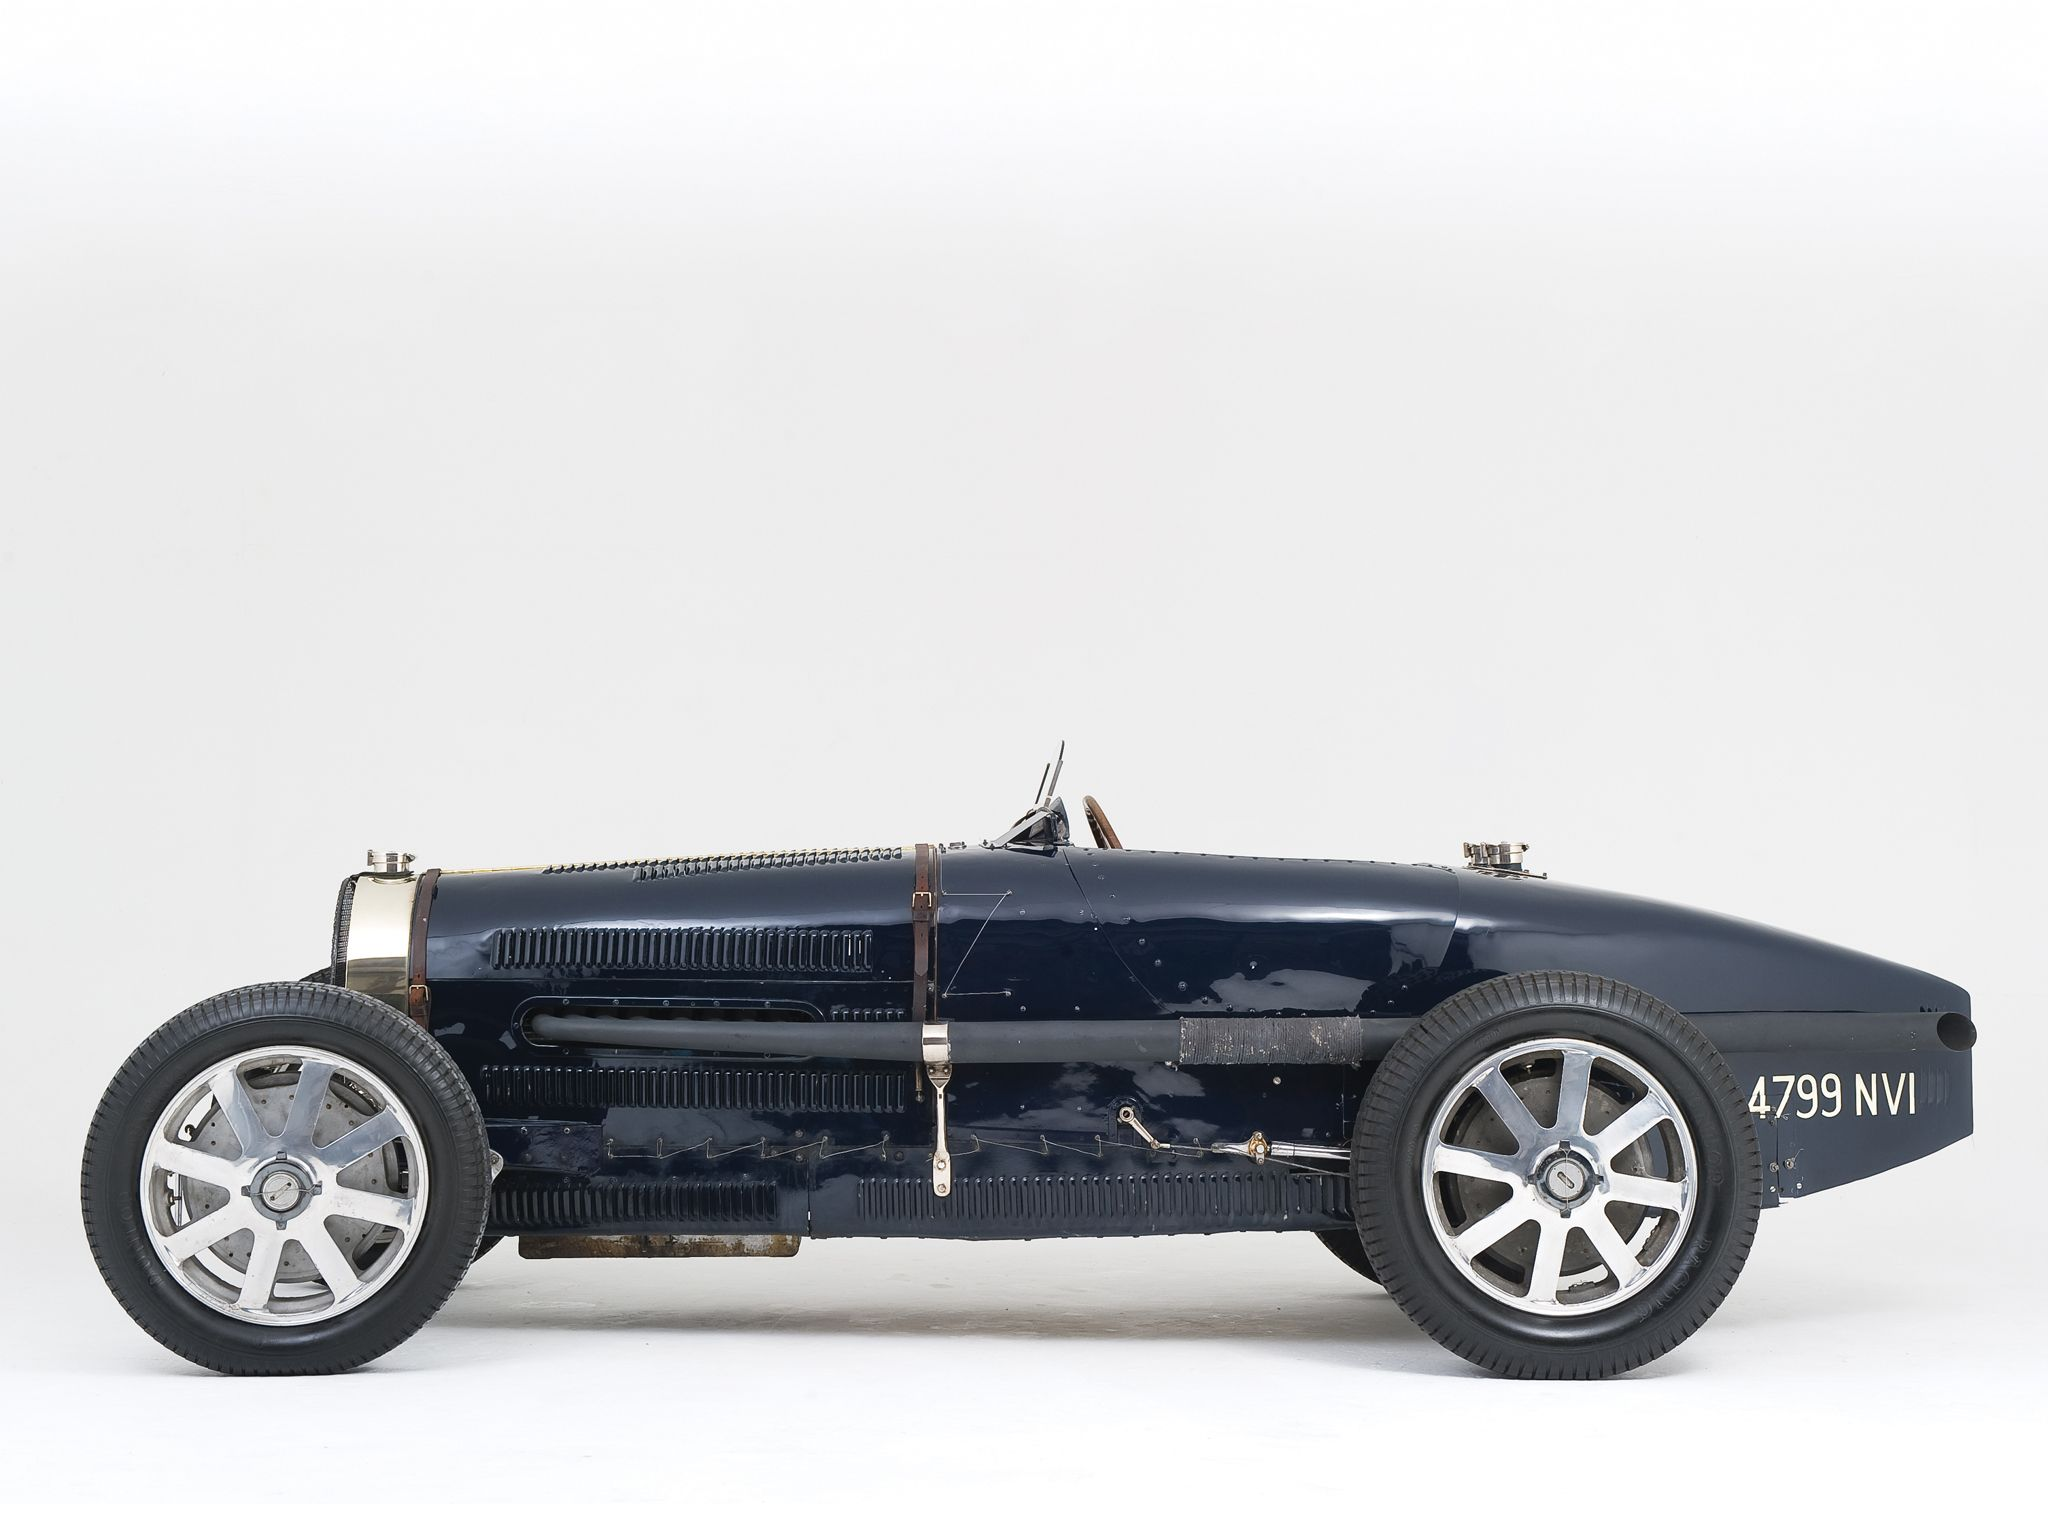 Bugatti Type 51 Grand Prix Racing Car 31 If You Ever Hear The Sound You Will Know Why They Are So Desirable Bugatti Voitures Retro Voiture De Course